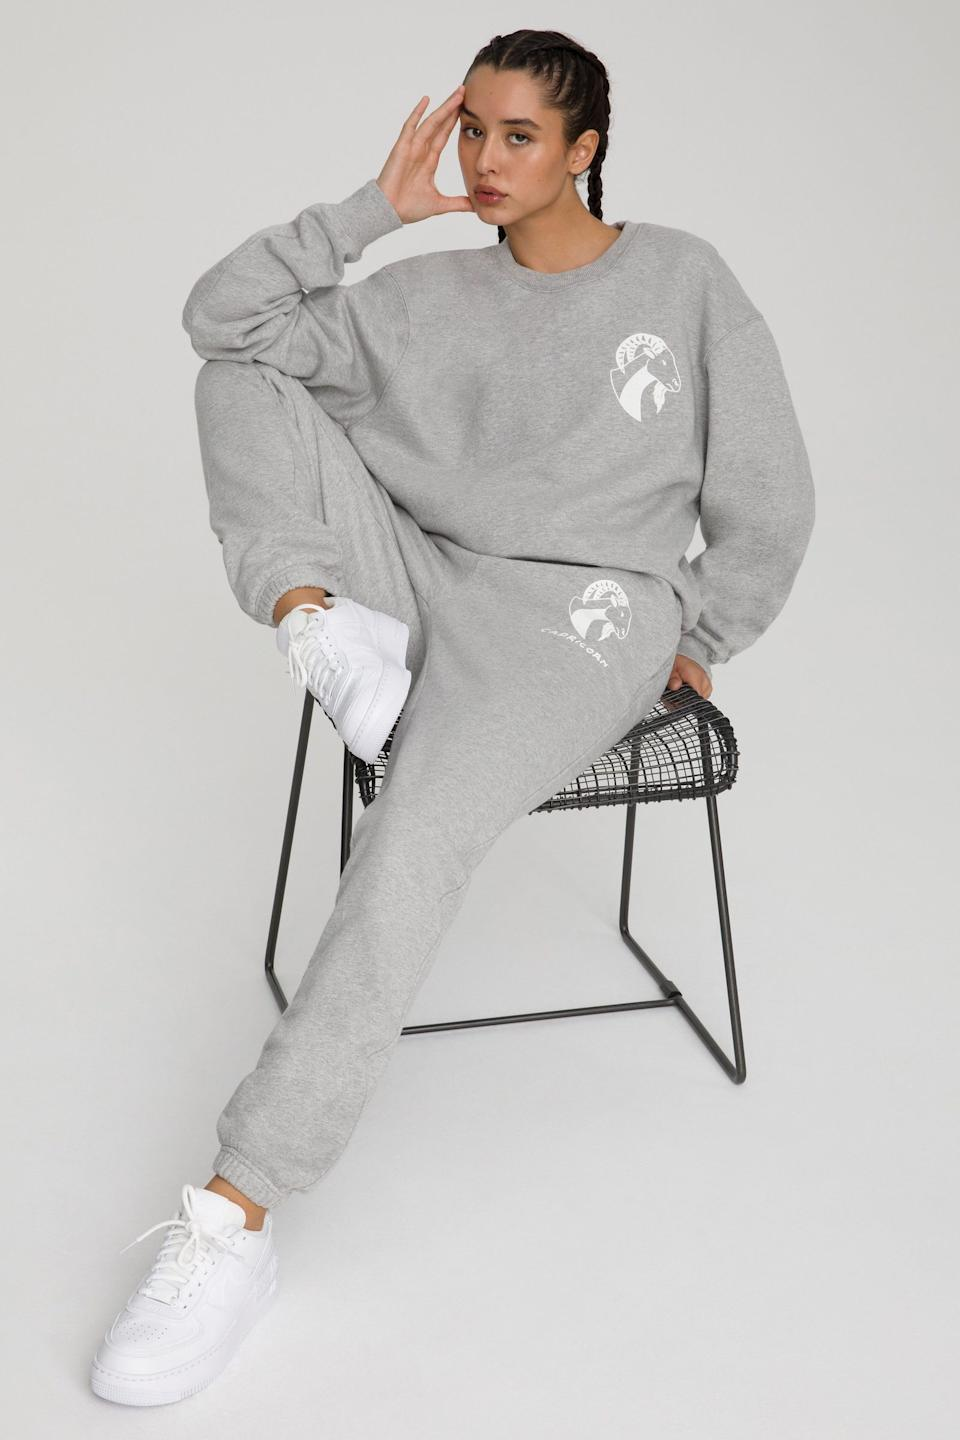 The Capricorn Zodiac Sweat Set from Good American. Sweatshirt, $124 and sweatpants, $105.